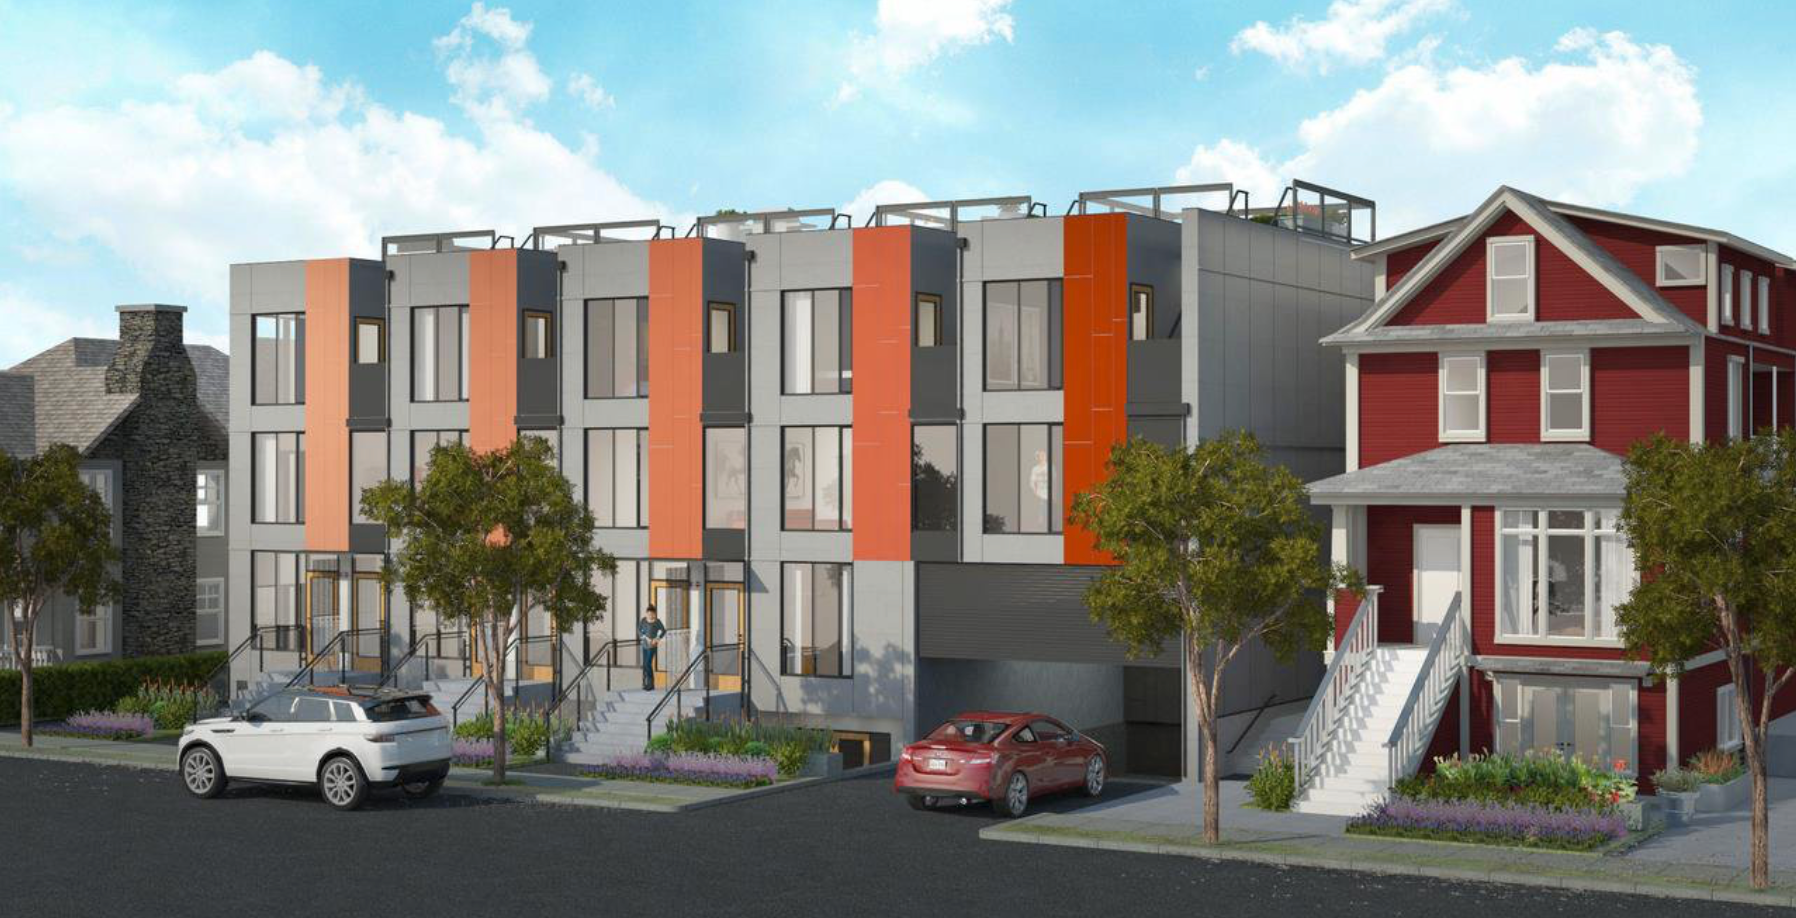 Main Photo: 531 E. 16th Avenue in Mount Pleasant VE - Vancouver: Number of Units: 21 Multifamily for sale ()